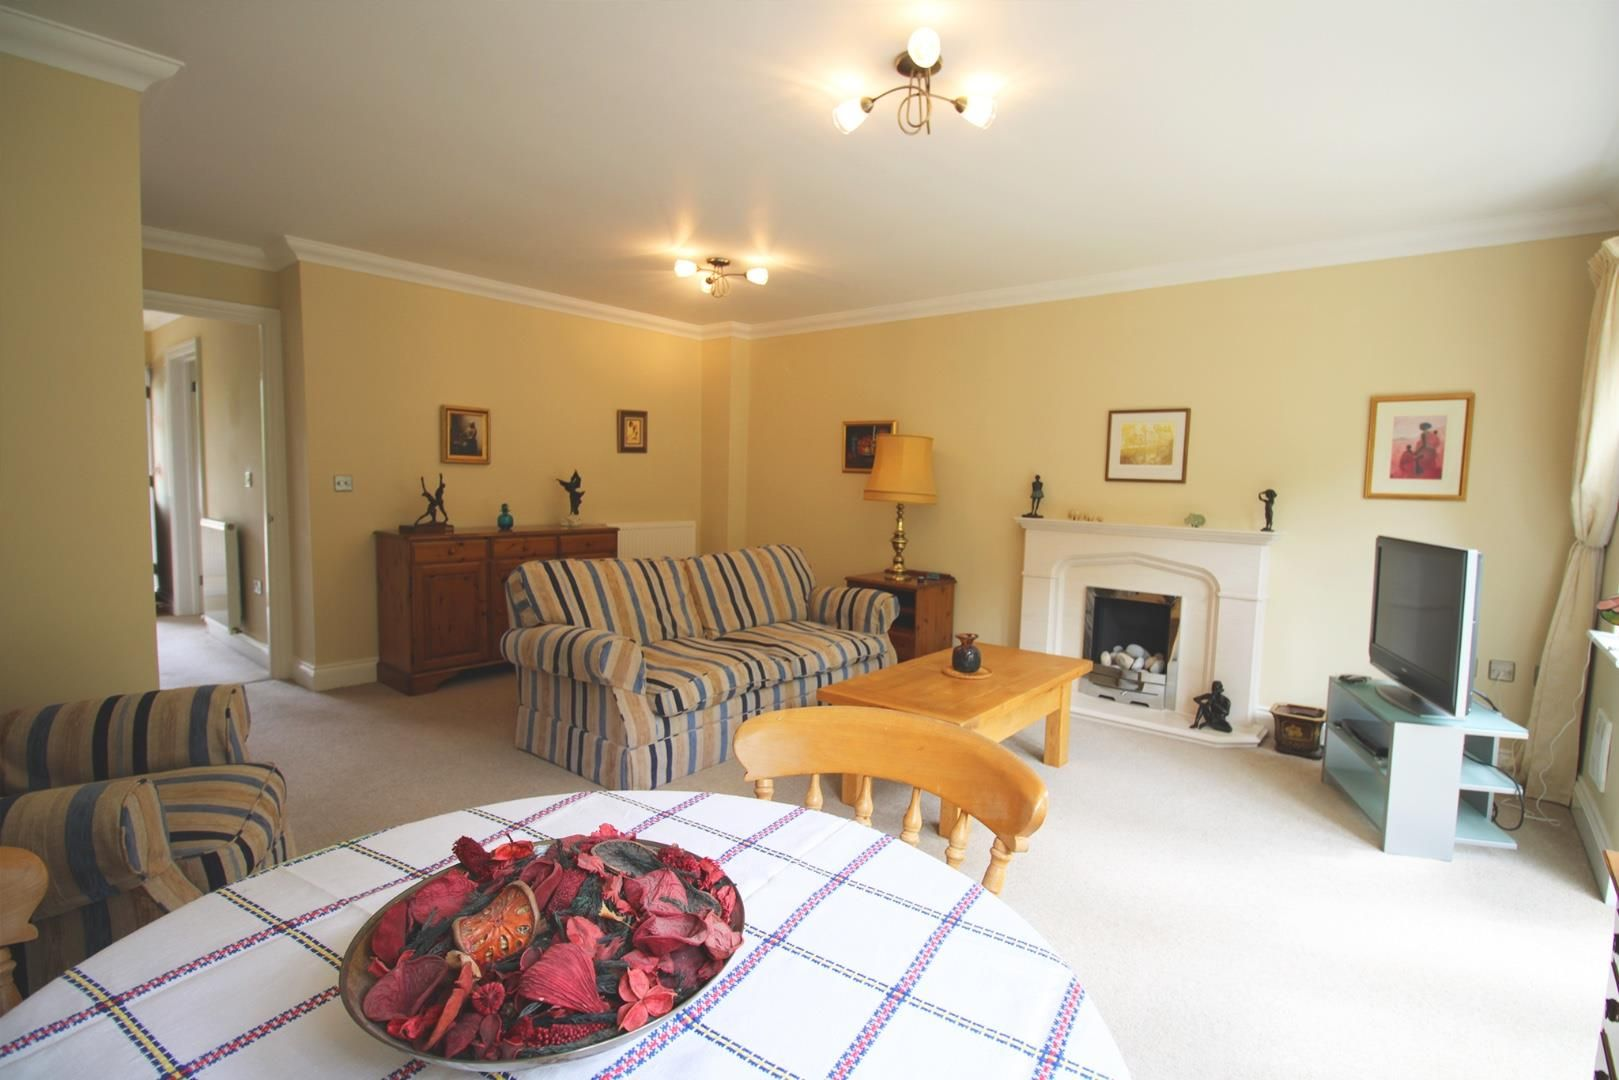 3 bed semi-detached for sale in Warfield 5